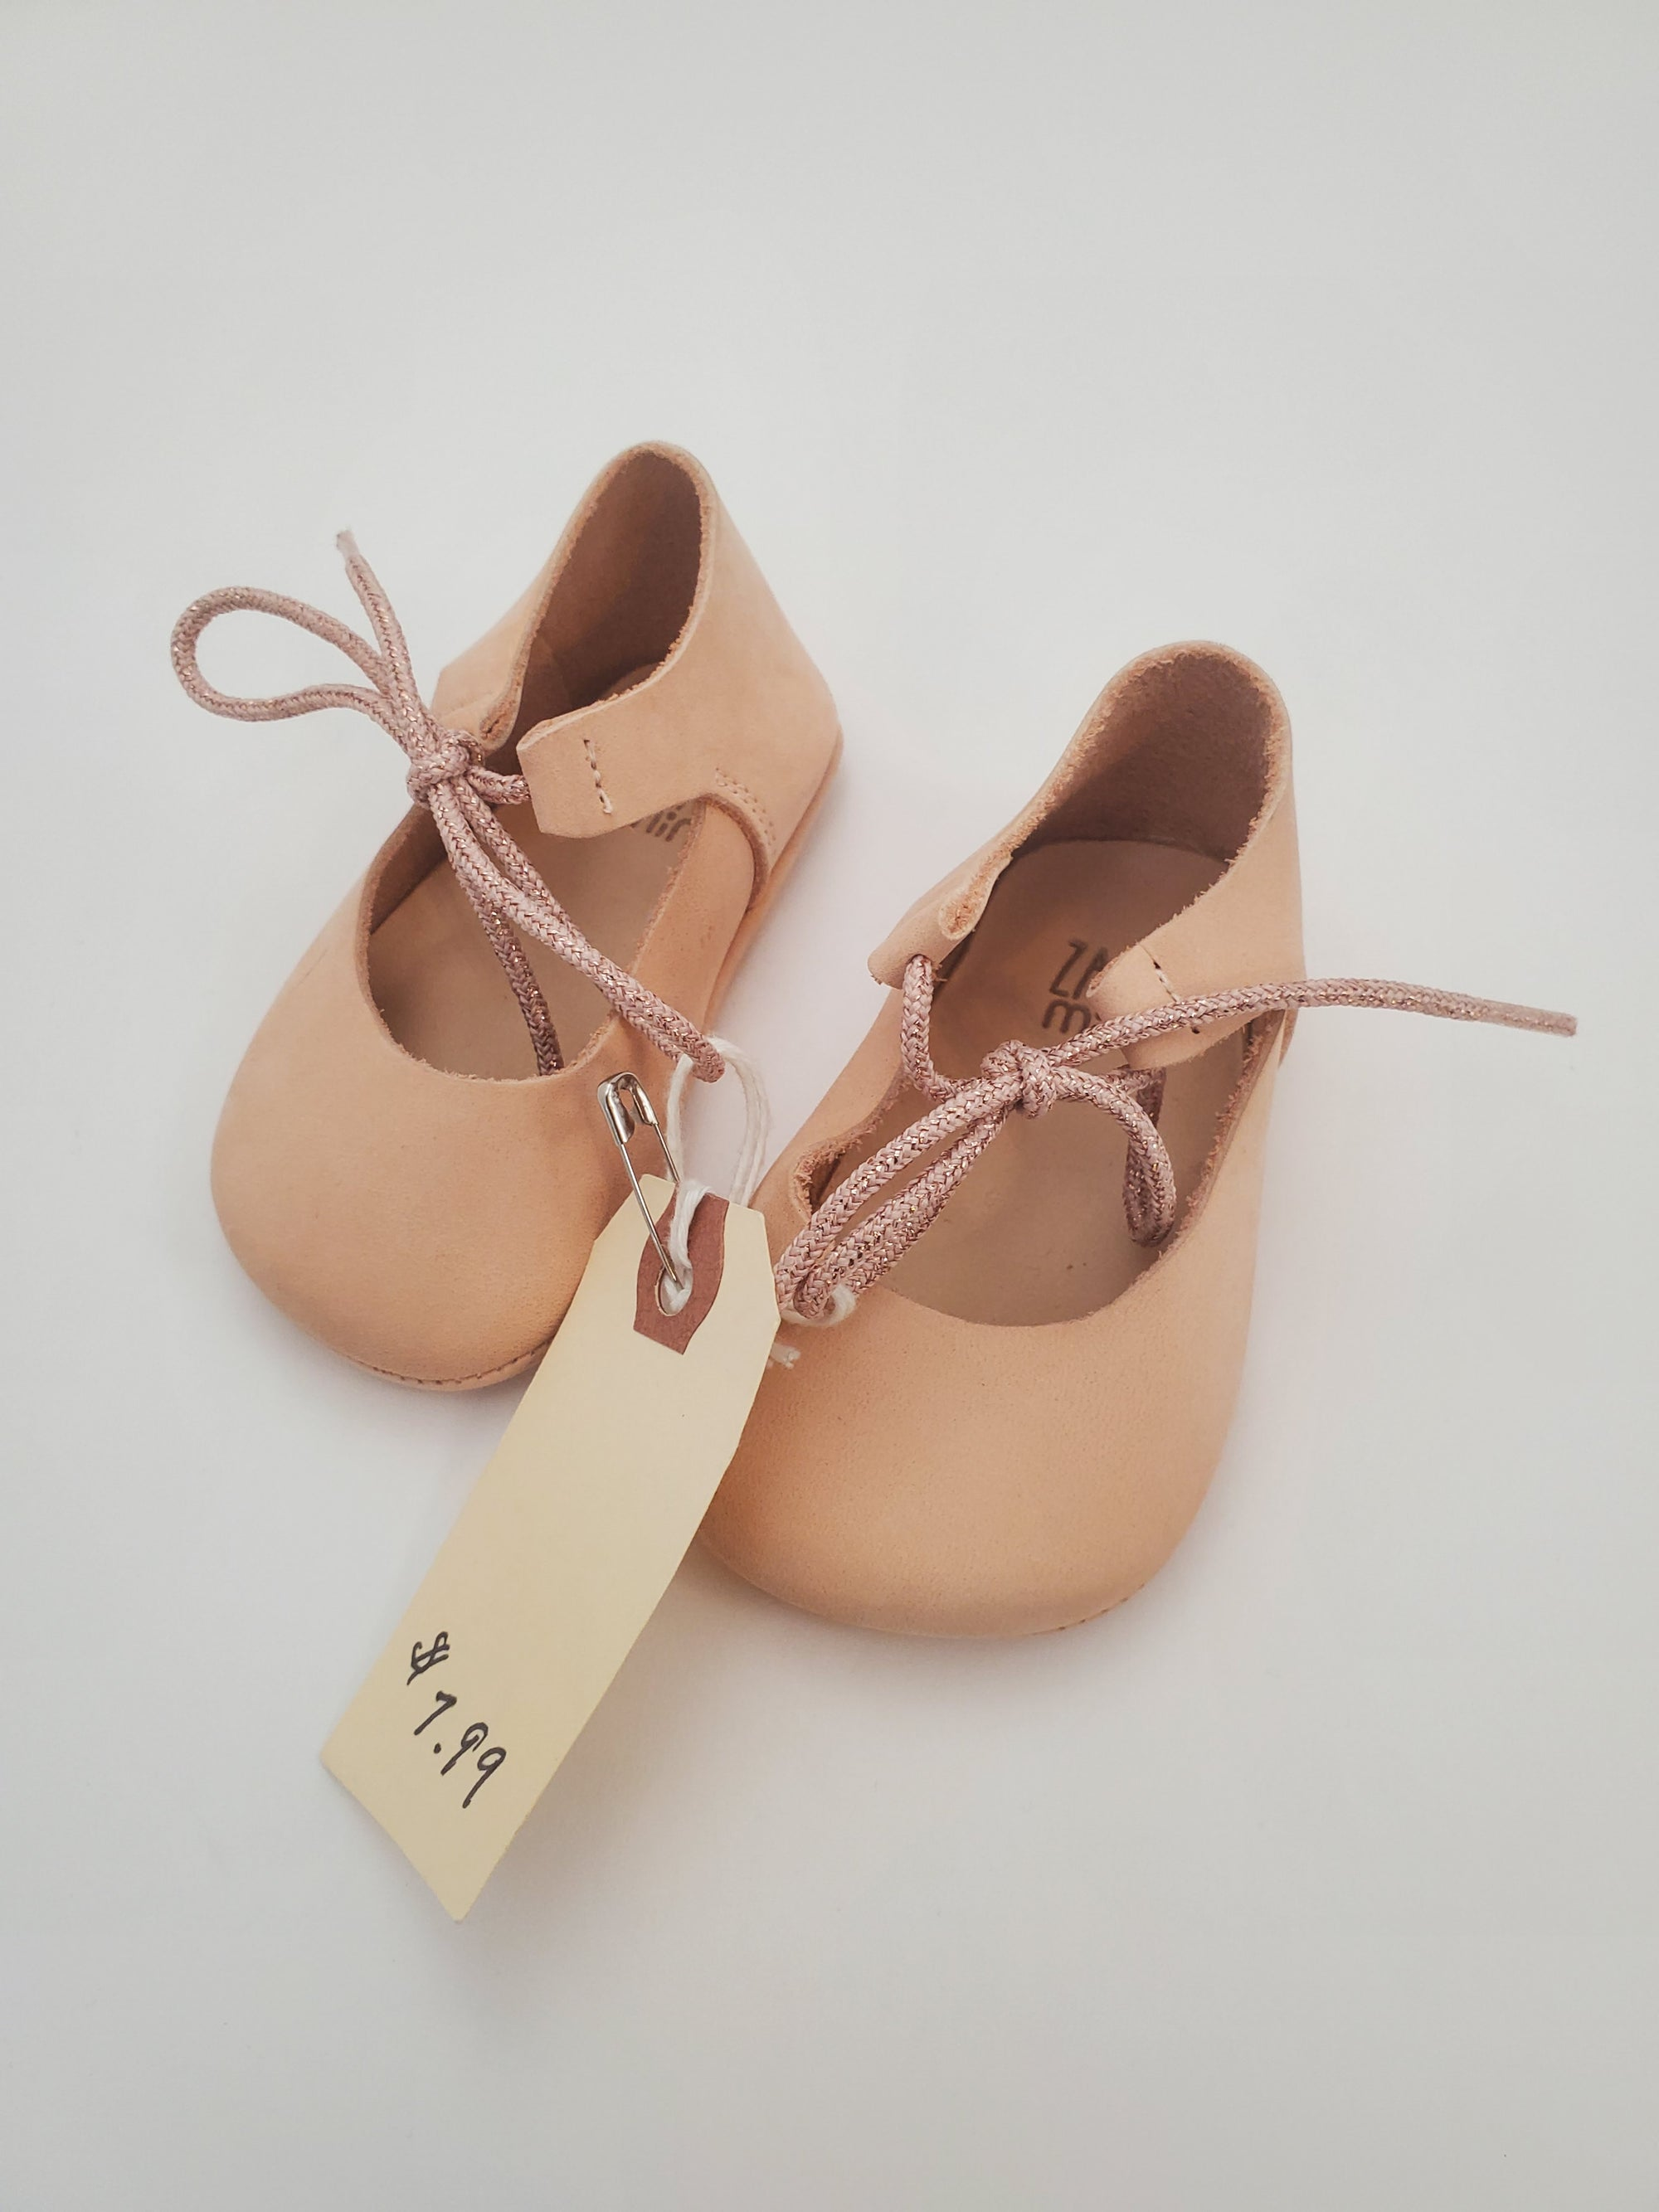 C1 Mini Zara Infant Soft Sole Shoes - Blush Pink